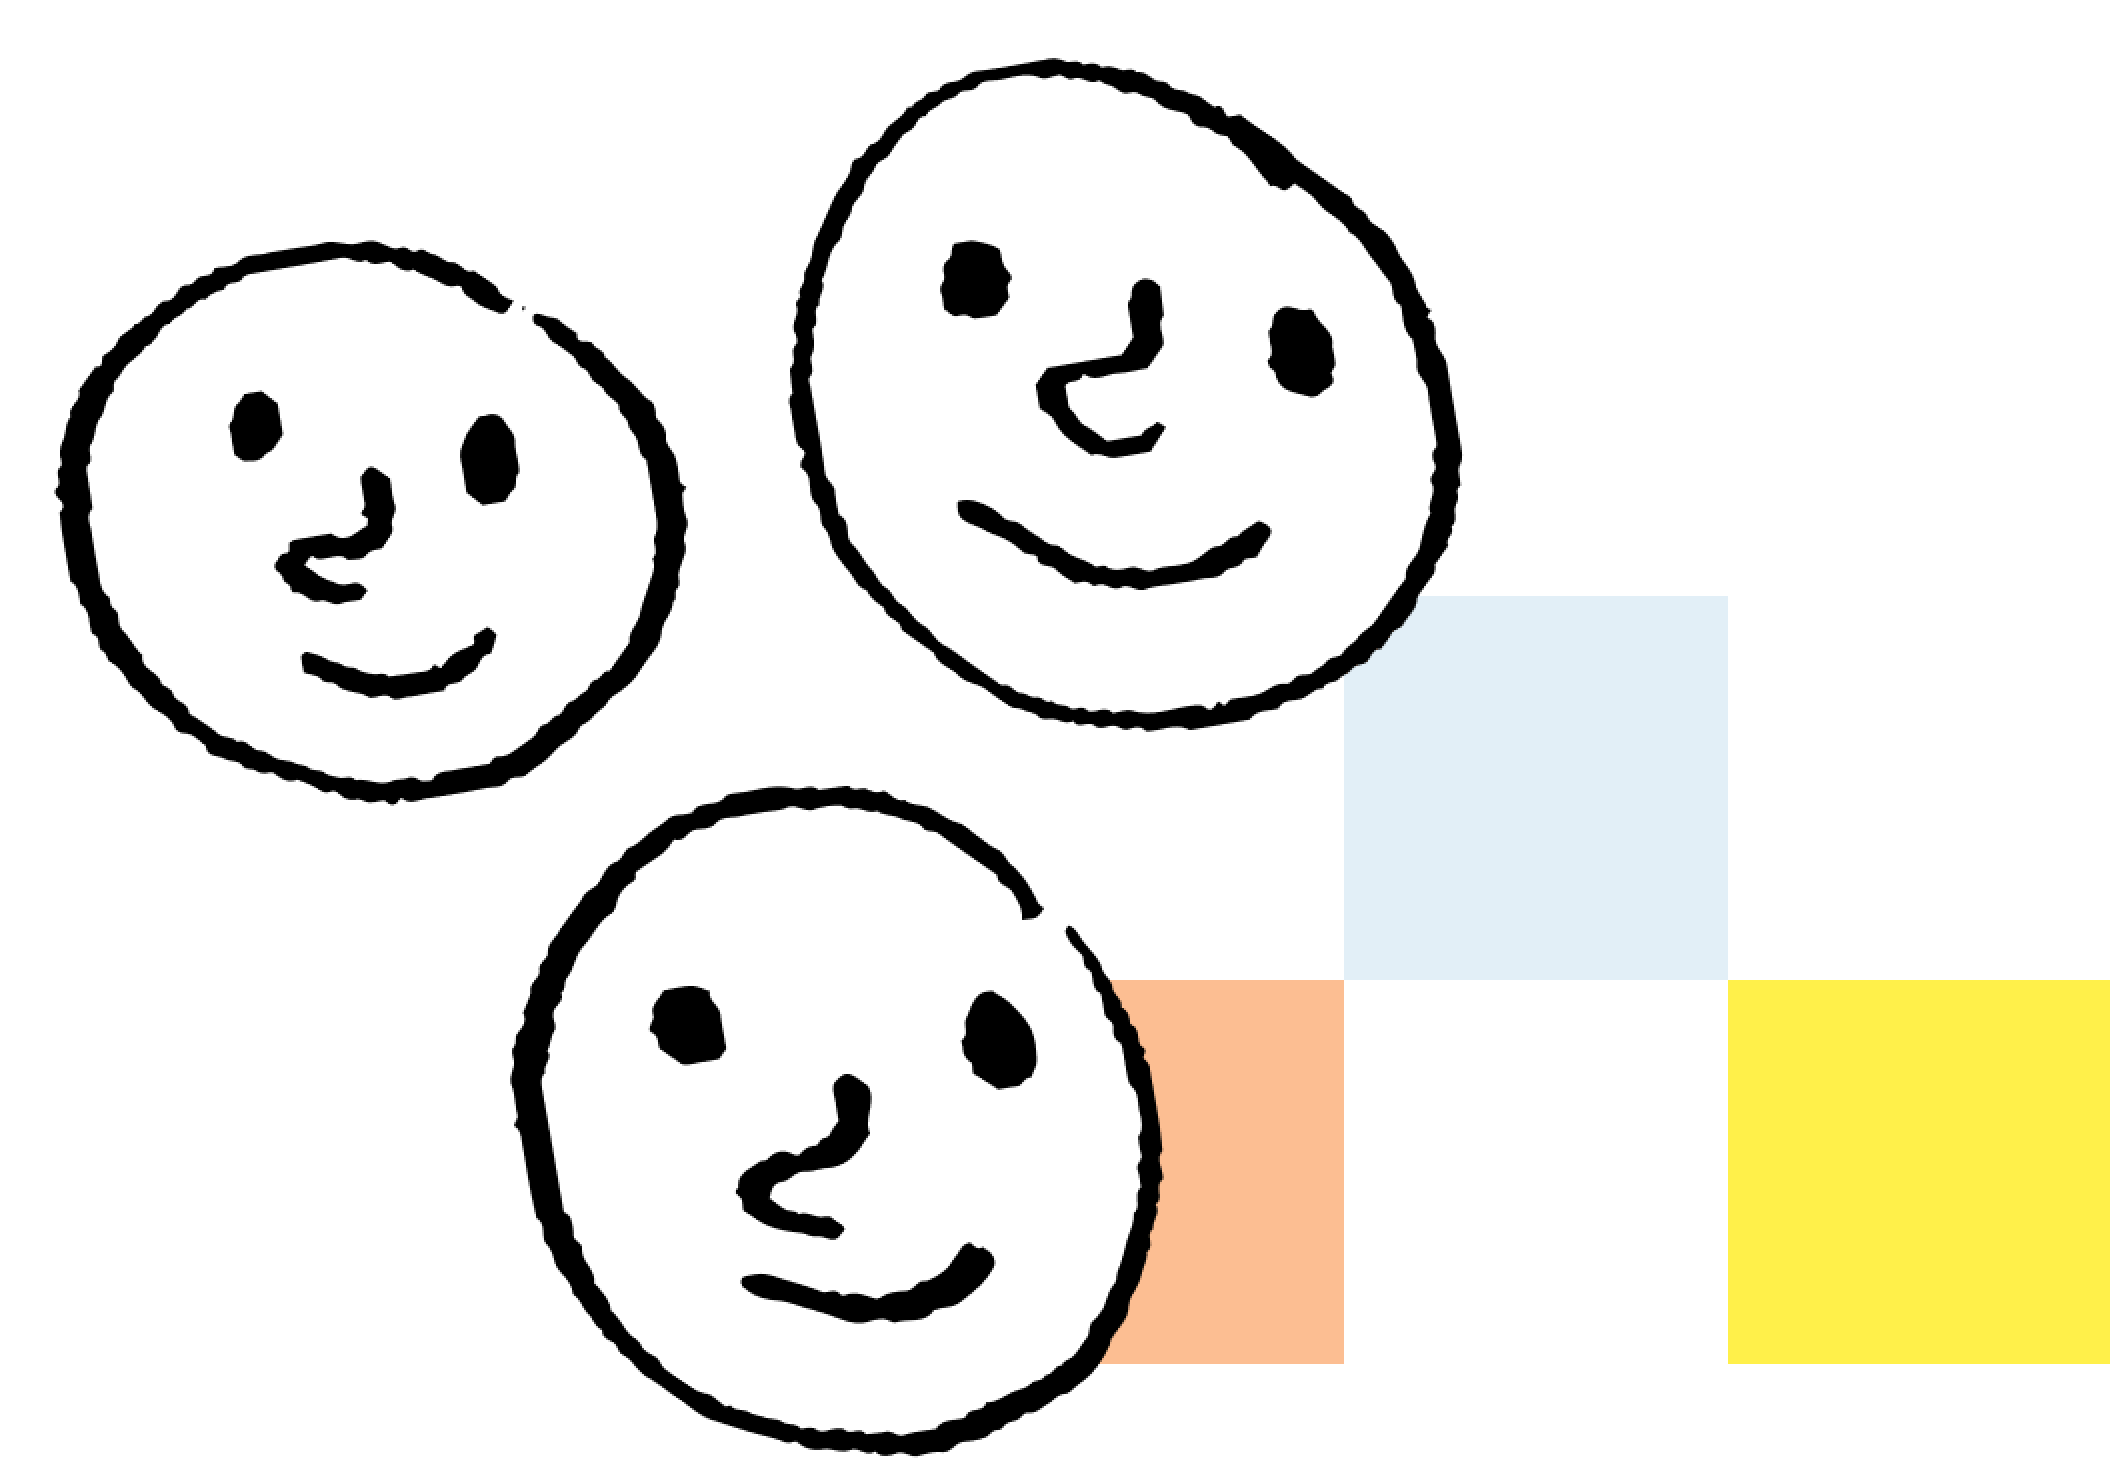 Exygy design and technology agency smiley face pixel